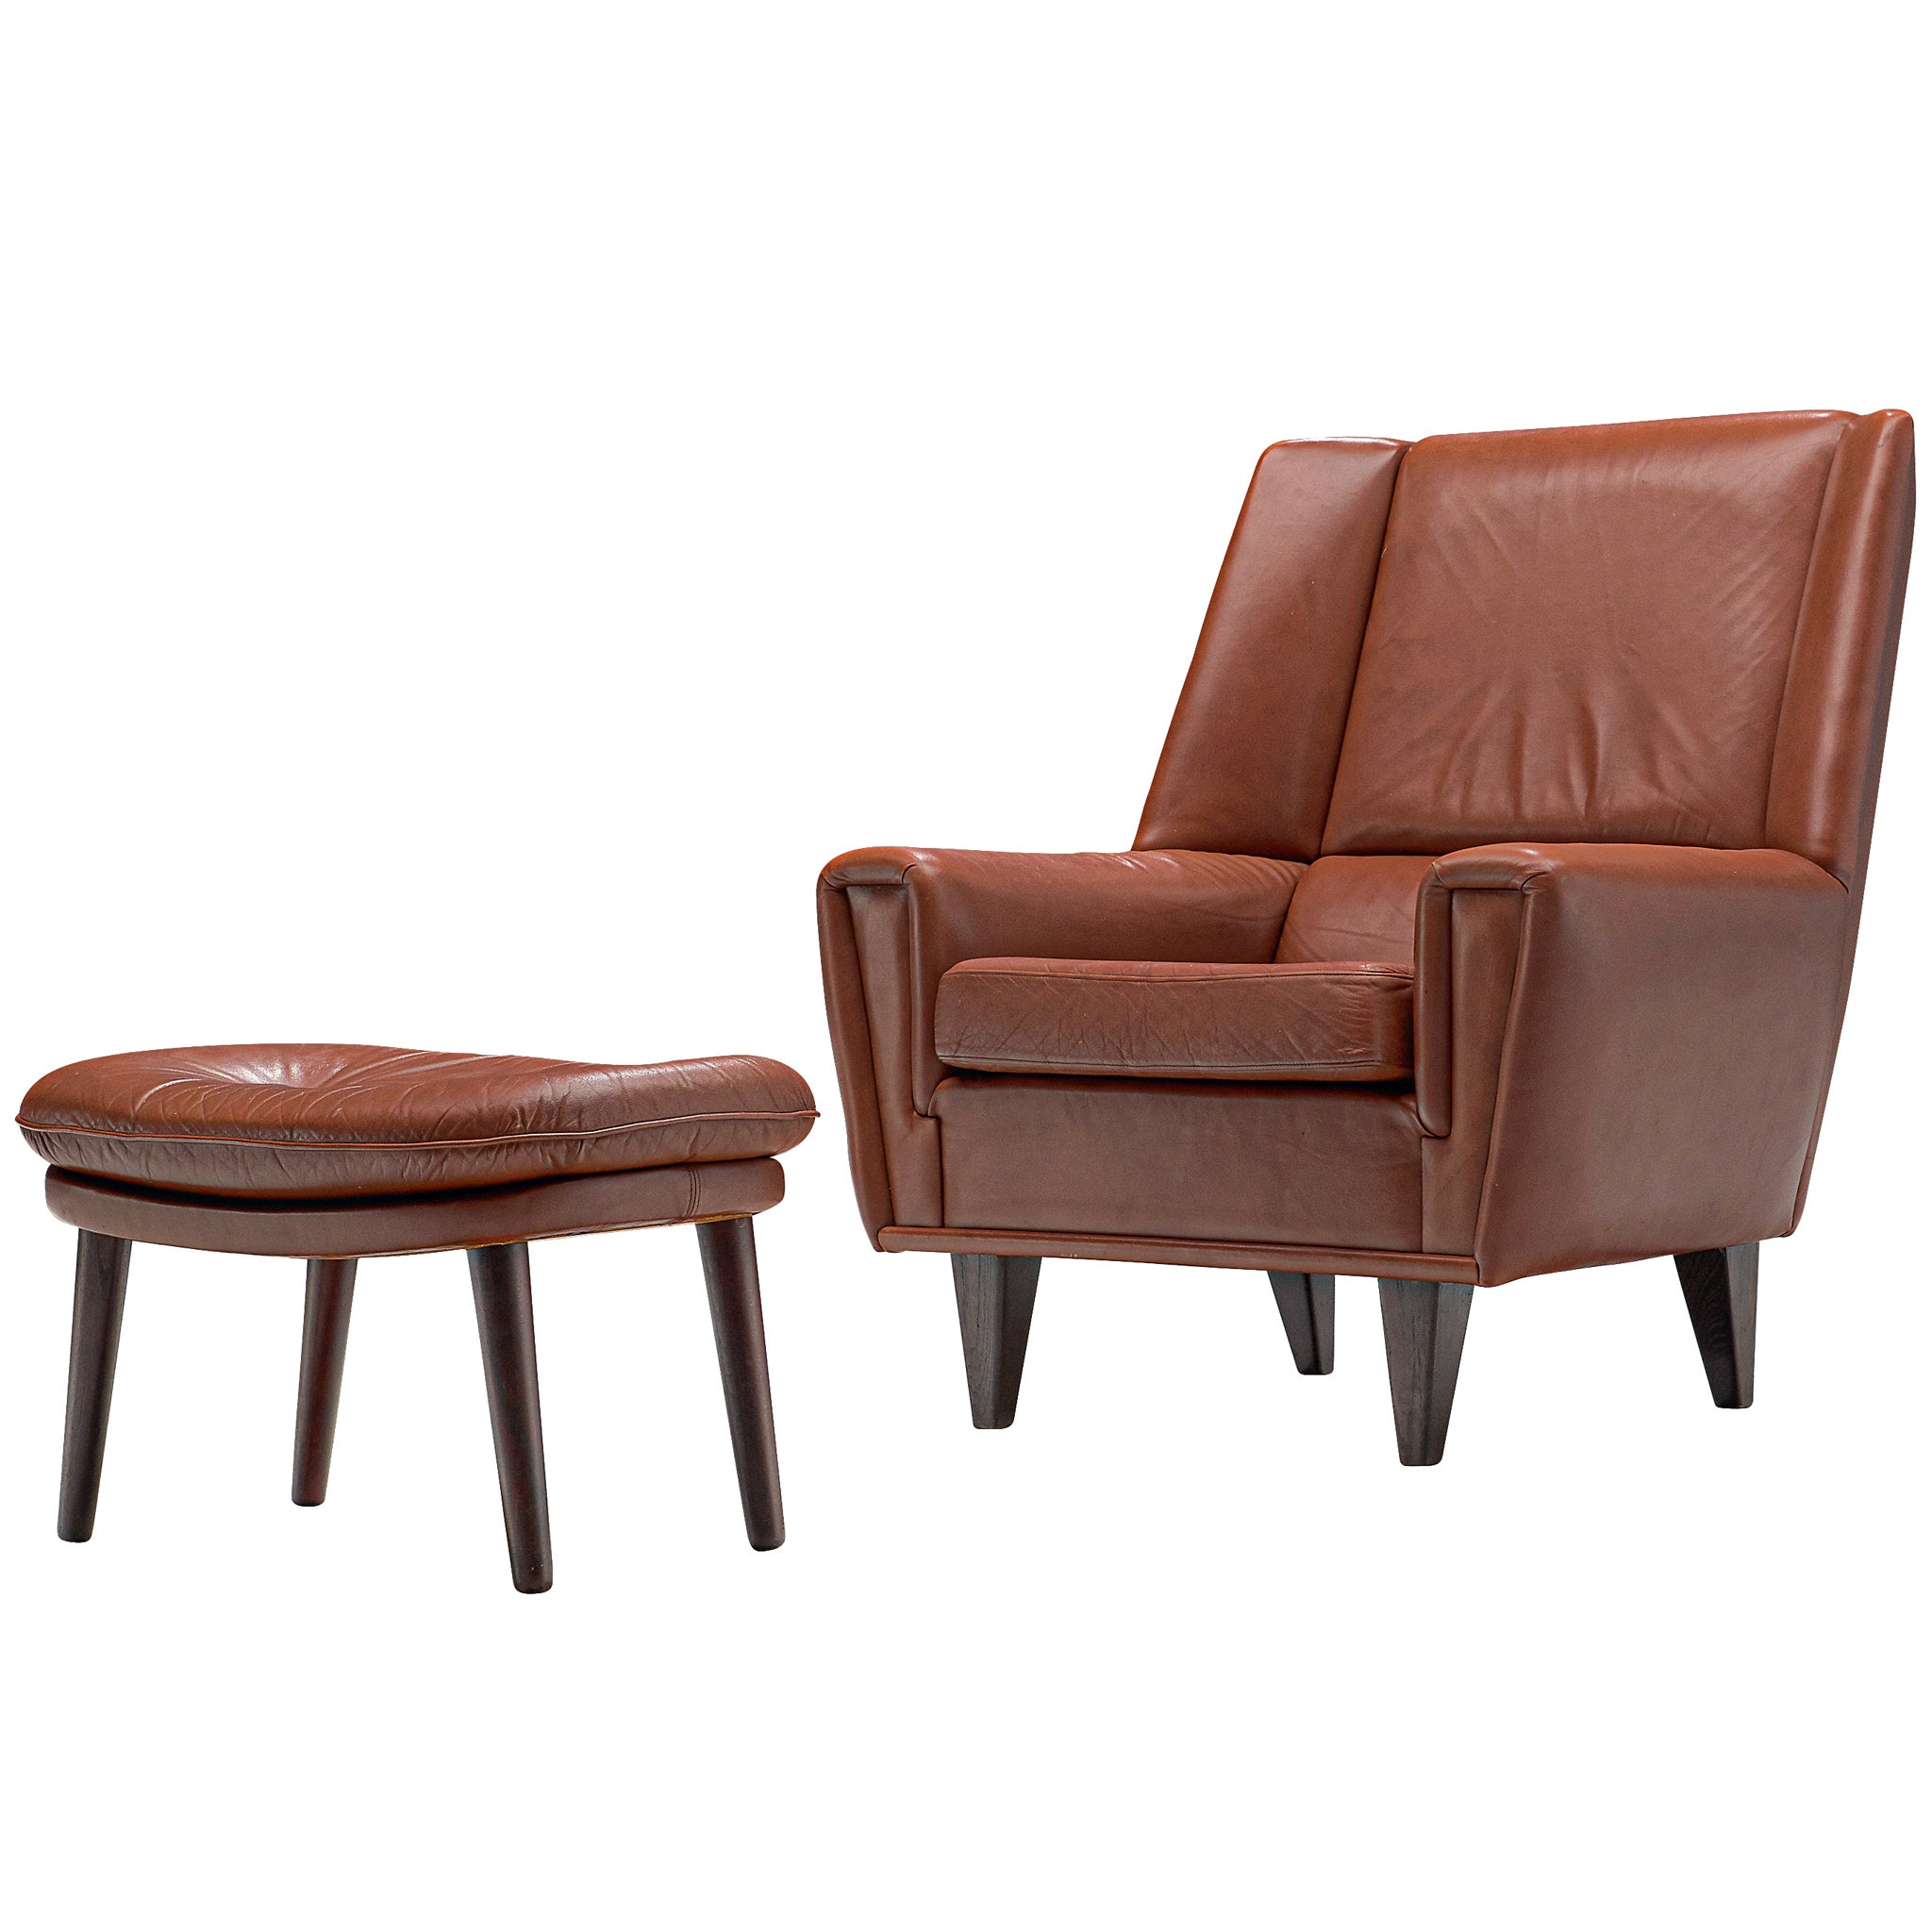 Danish Lounge Chair with Ottoman in Leather